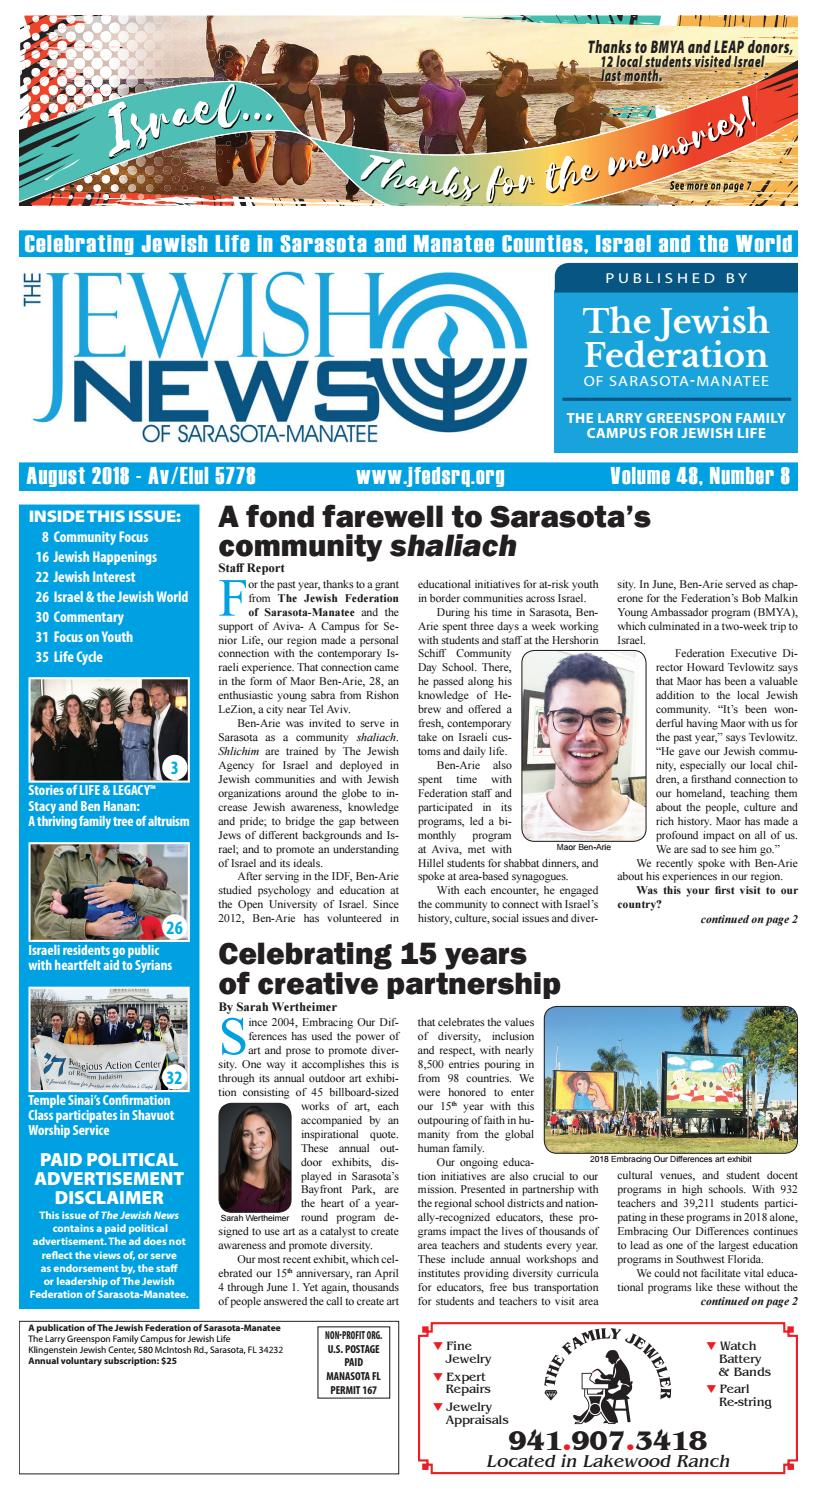 The Jewish News - August 2018 by The Jewish Federation of Sarasota-Manatee  - issuu 0ac87a8bc